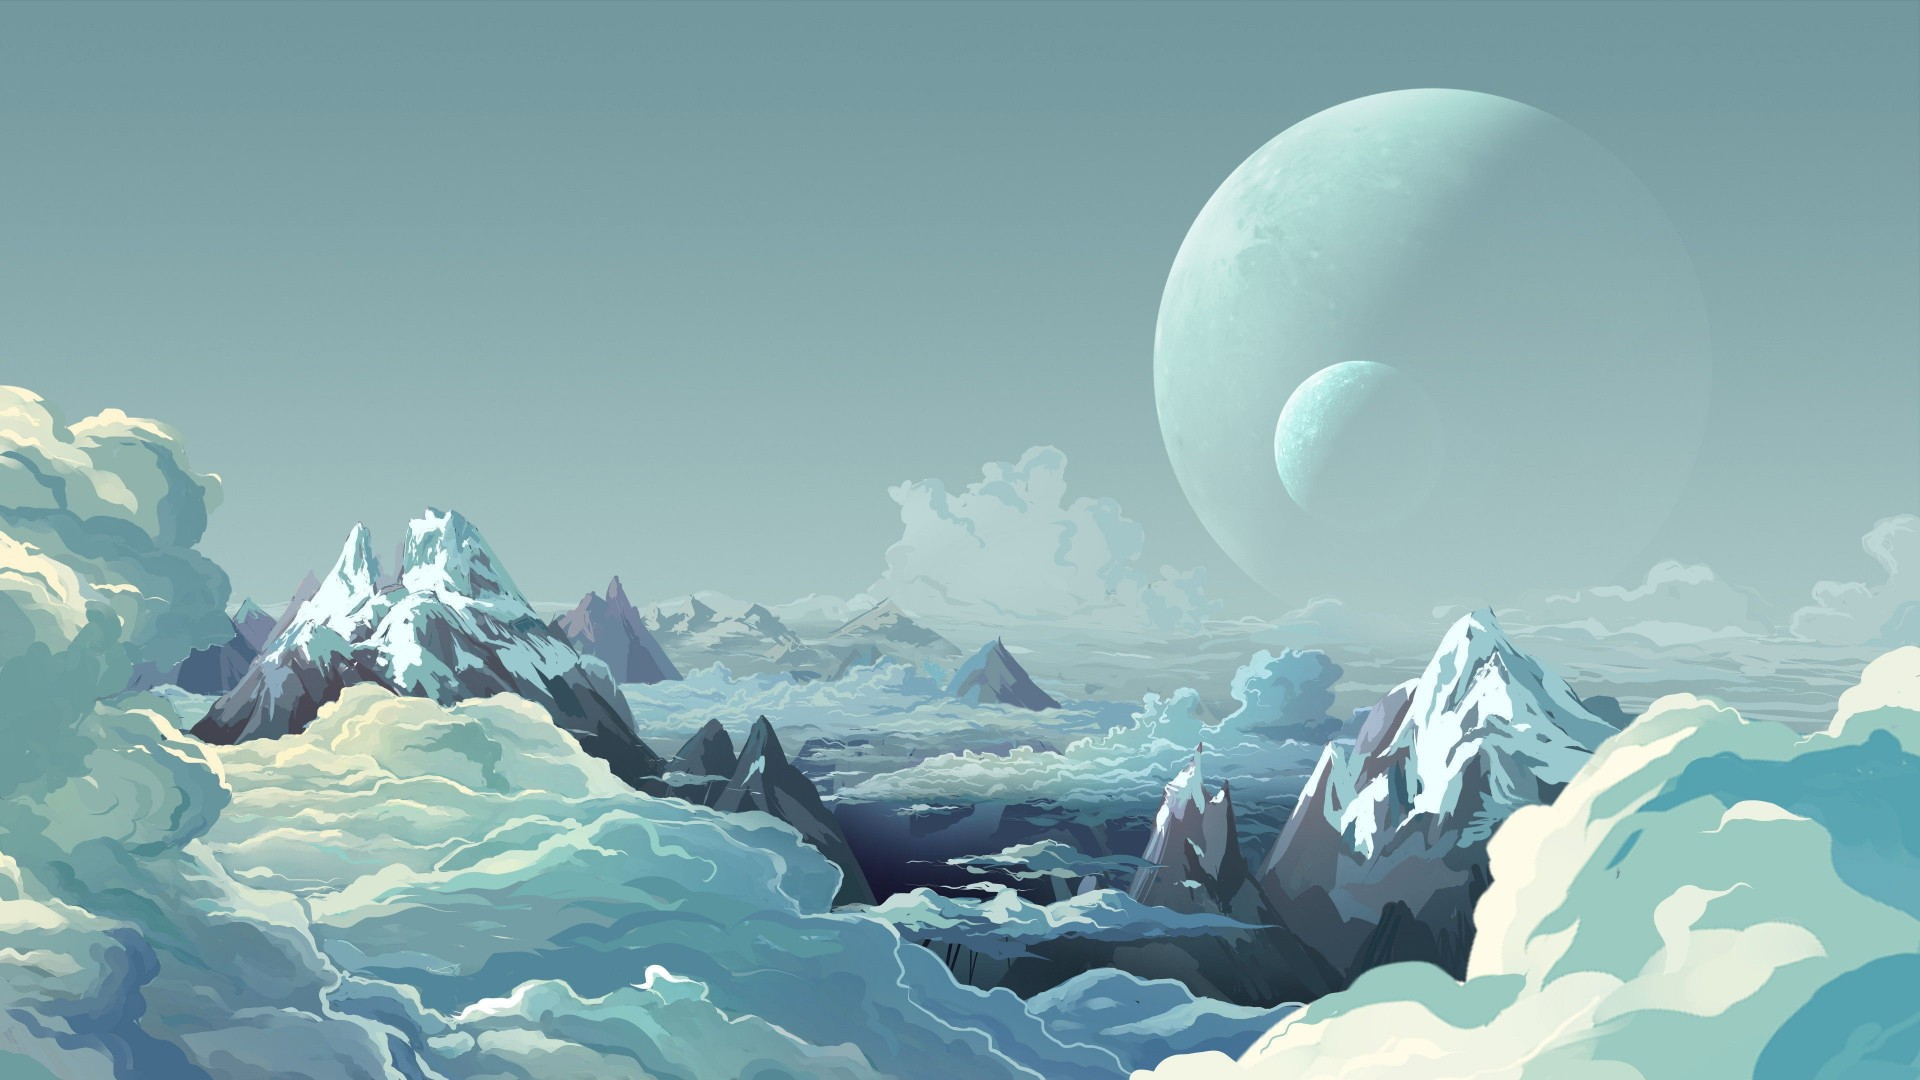 mountains, clouds, planets, snow (horizontal)